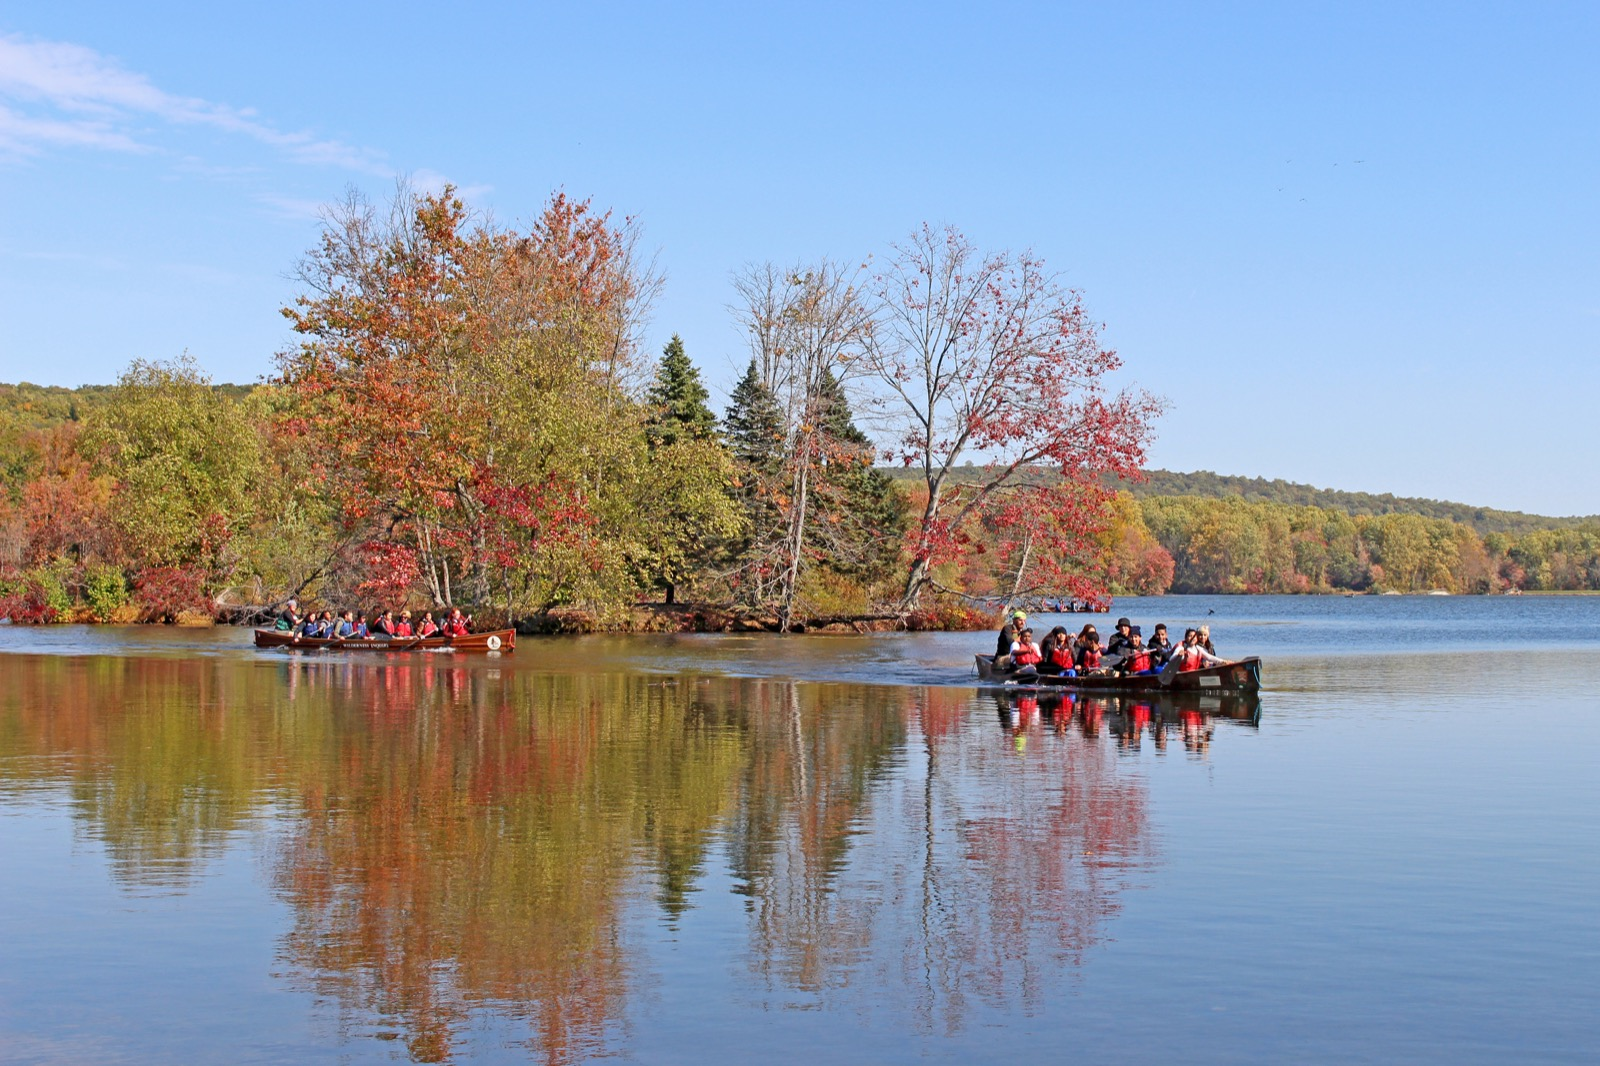 two Voyageur canoes paddle along a calm river in the fall